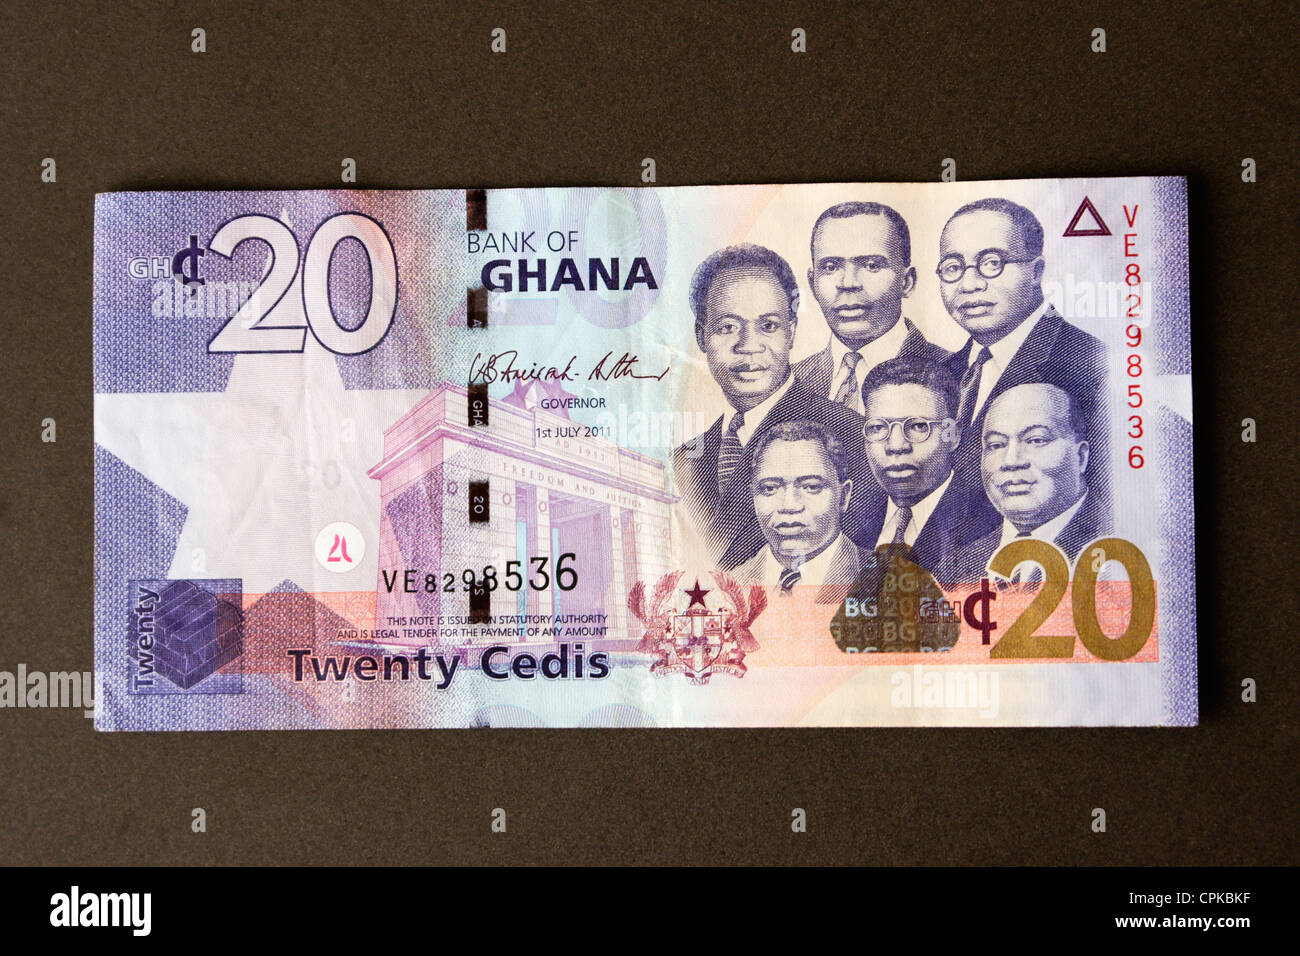 Currency of Ghana (cedi) - Stock Image